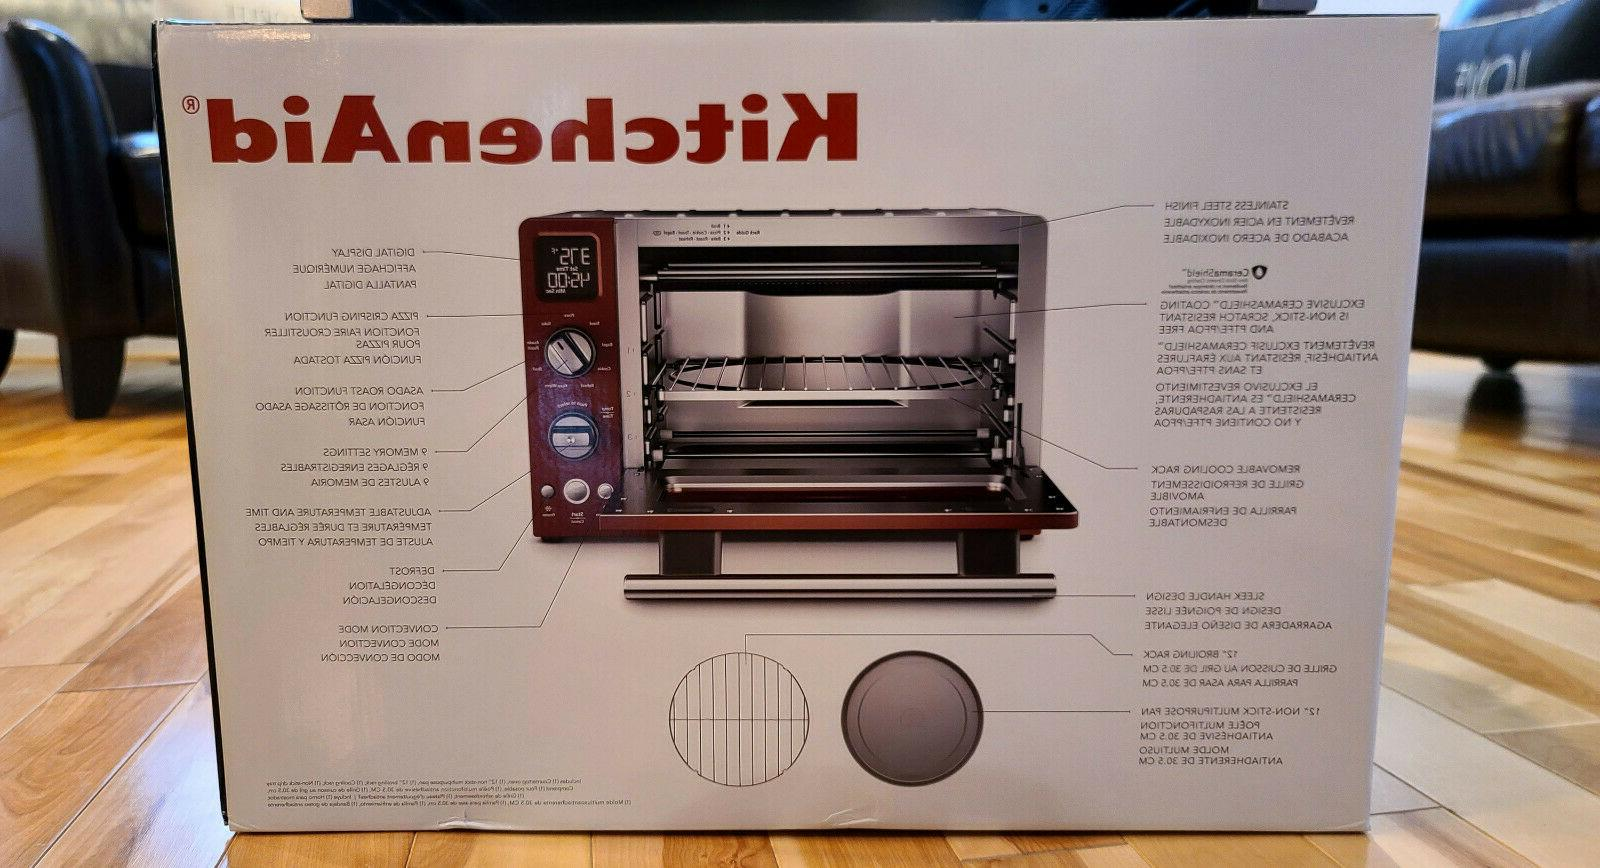 KitchenAid Convection Oven Pre-Programmed Settings